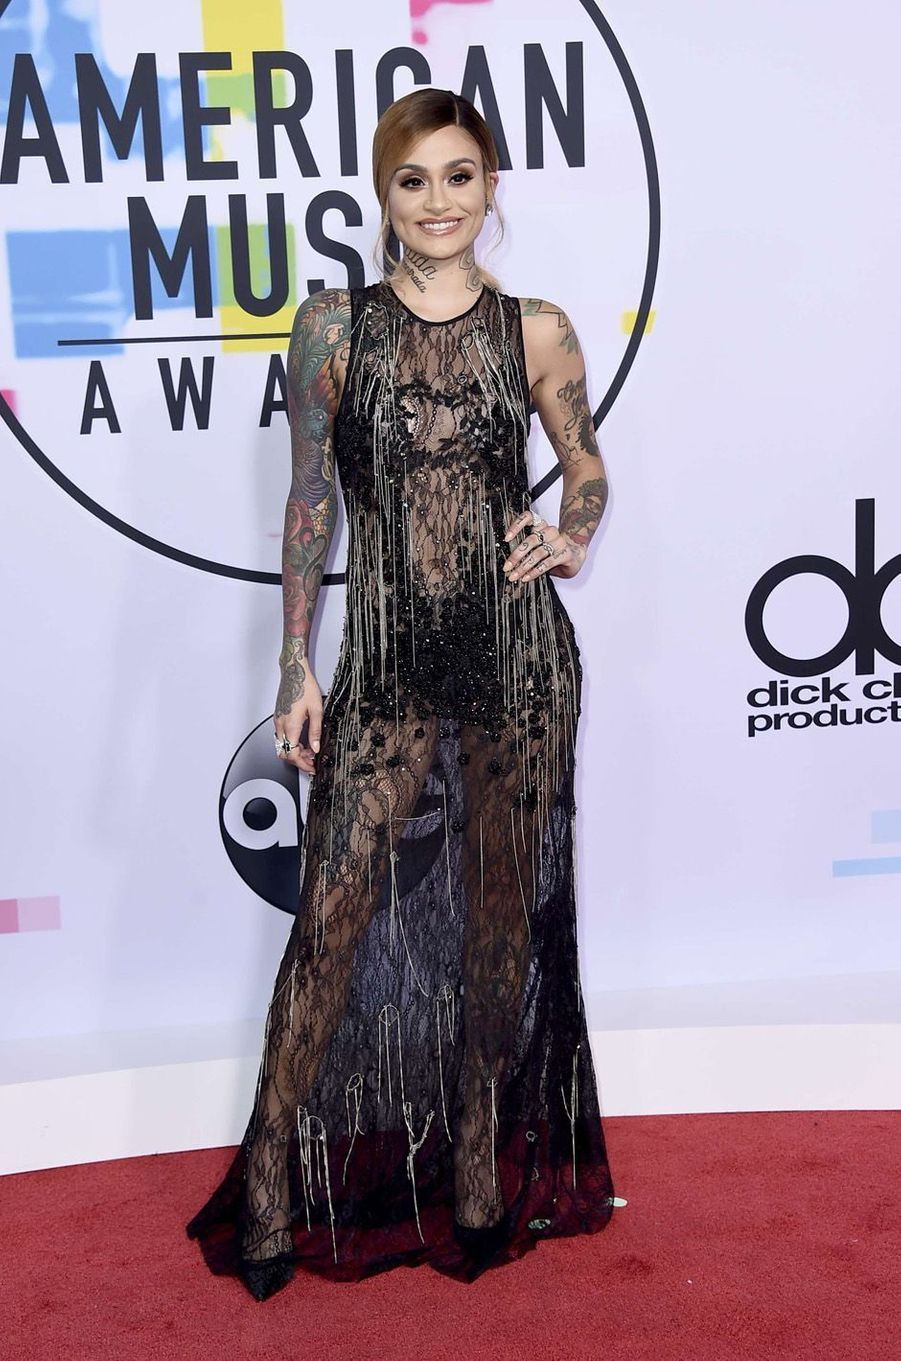 Kehlani aux American Music Awards, le 19 novembre 2017 à Los Angeles.